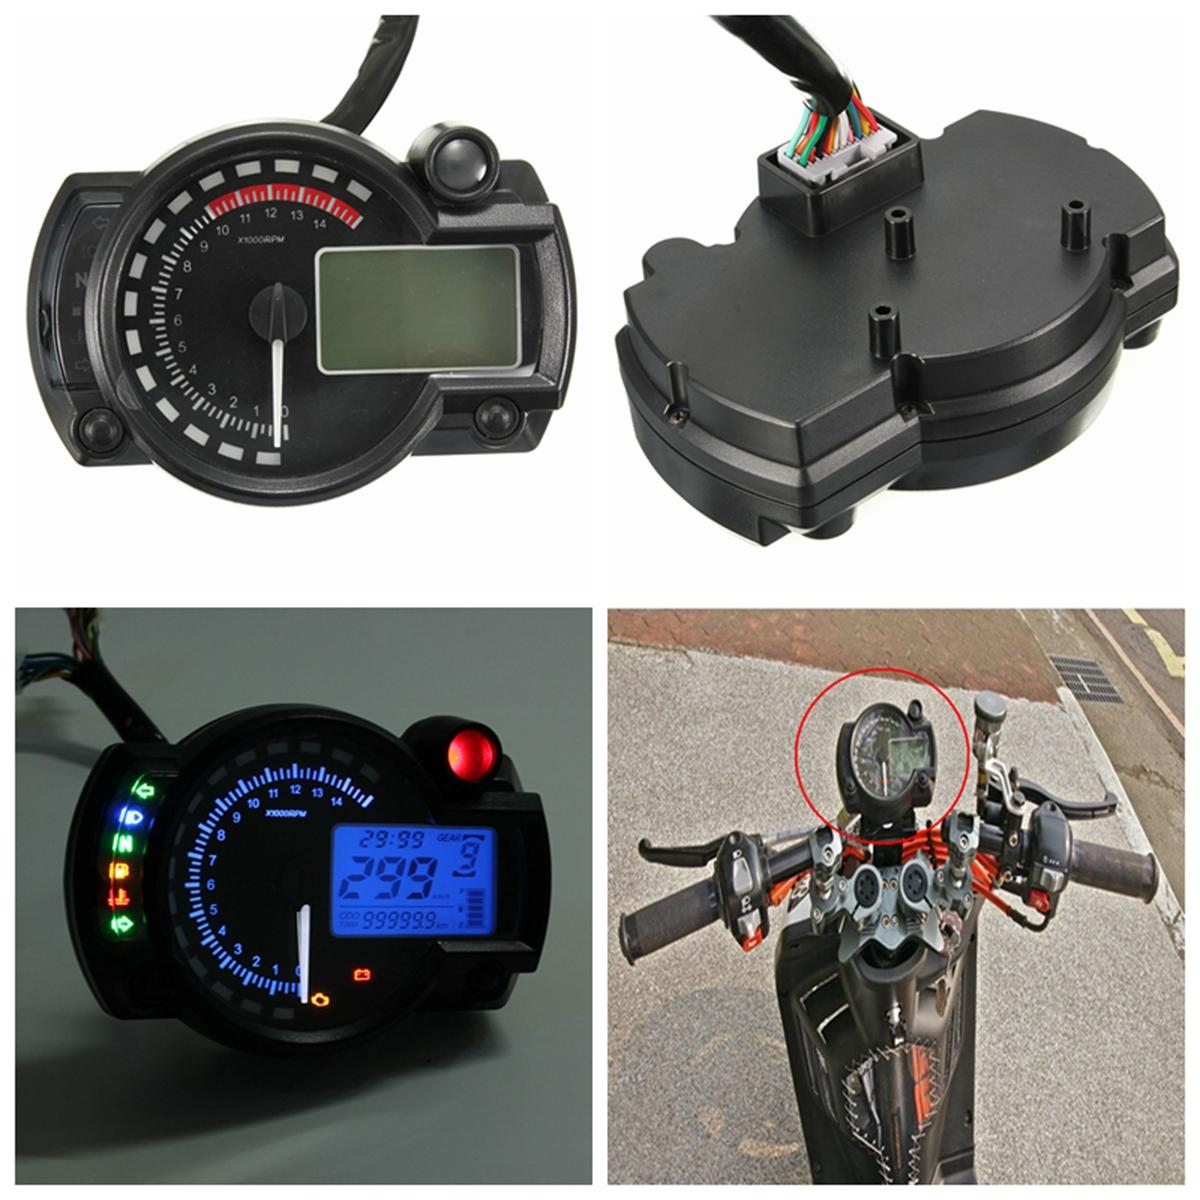 Blue Backlight Lcd Digital Motorcycle Motorbike Speedometer Odometer Tachometer 4 In 1 Inch254cm 3 The Color Of Actual Items May Slightly Different From Listing Images Due To Computer Screen Thanks For Your